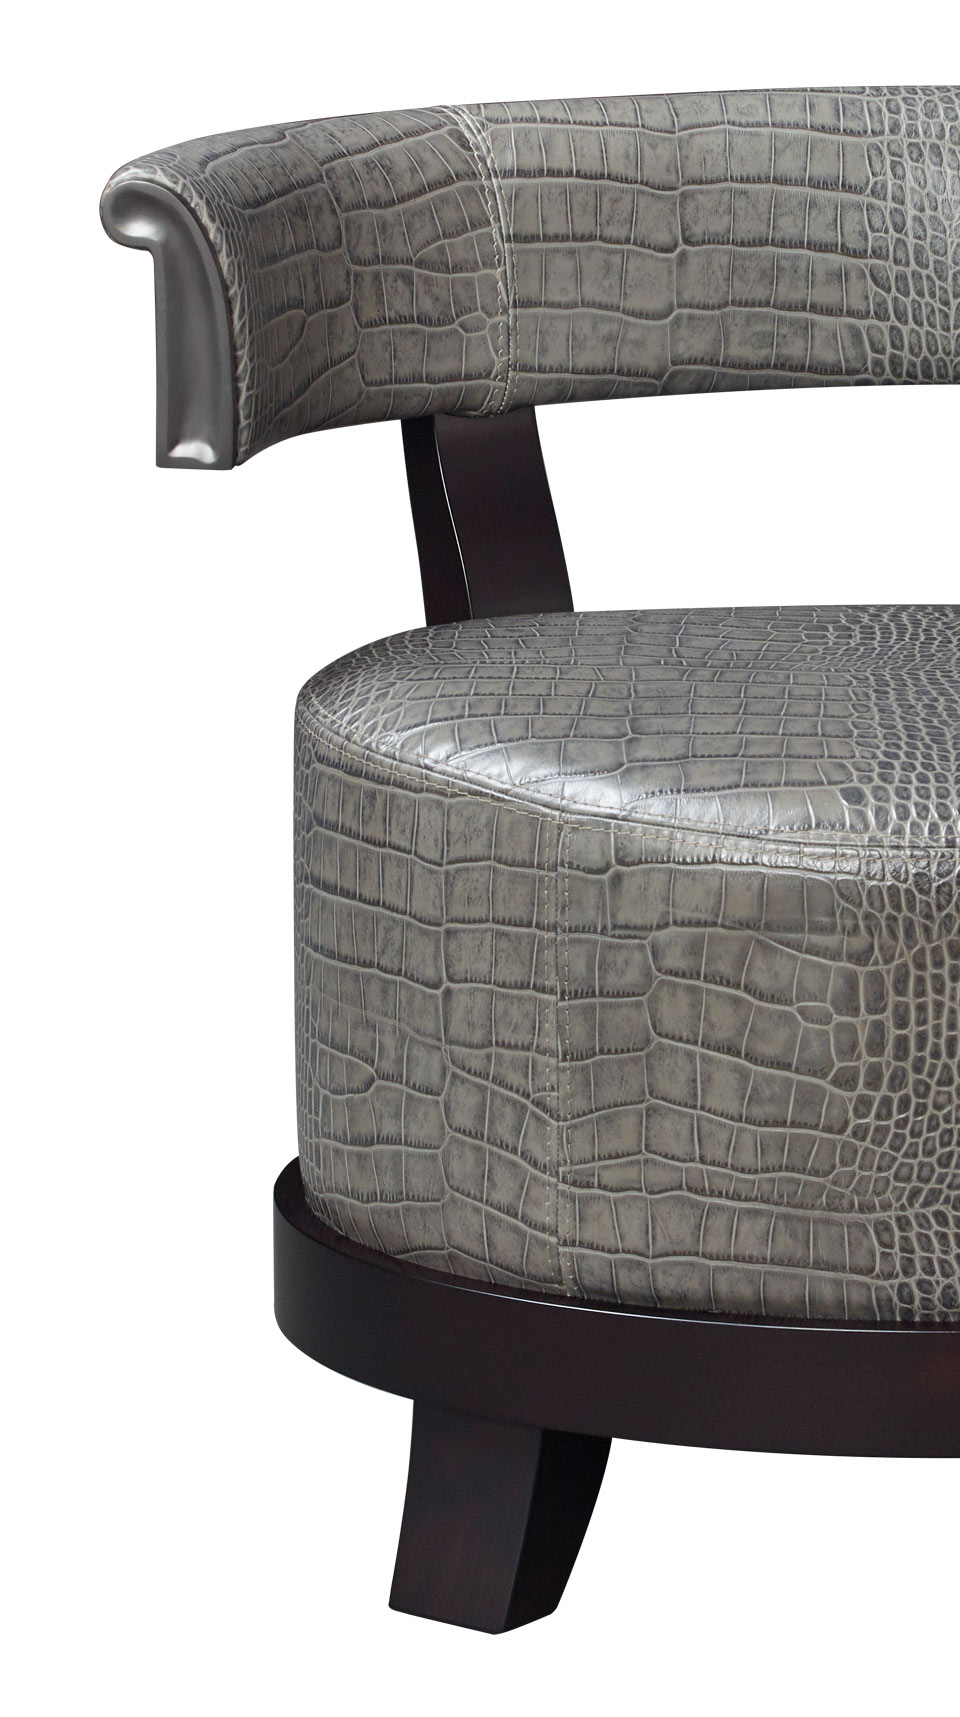 Detail of Chelsea, a wooden armchair covered in fabric or leather with bronze details, from Promemoria's catalogue | Promemoria